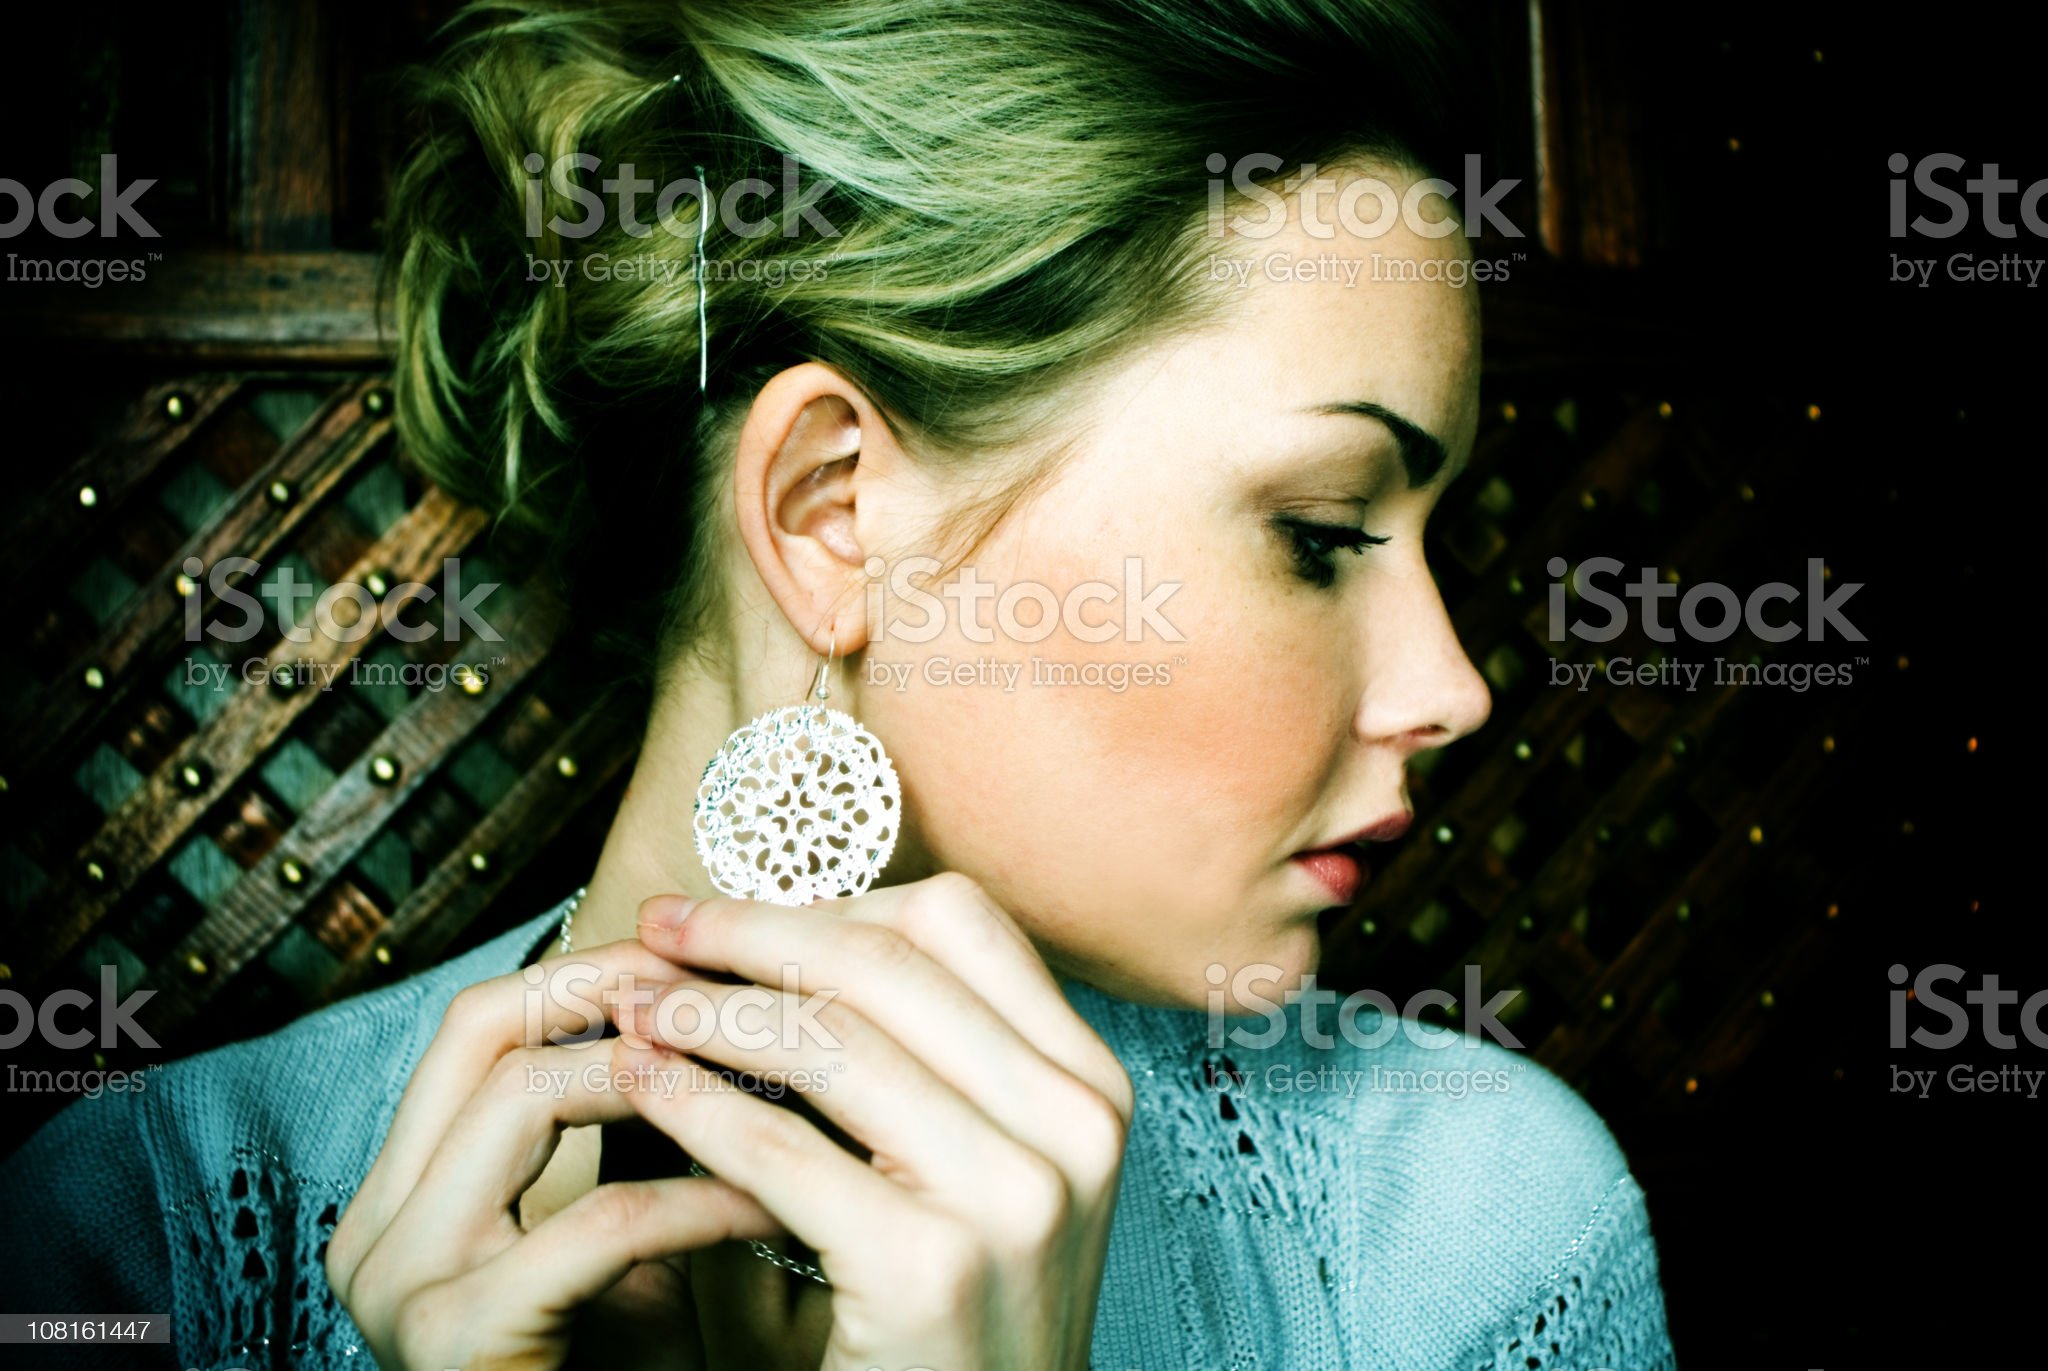 Sad royalty-free stock photo